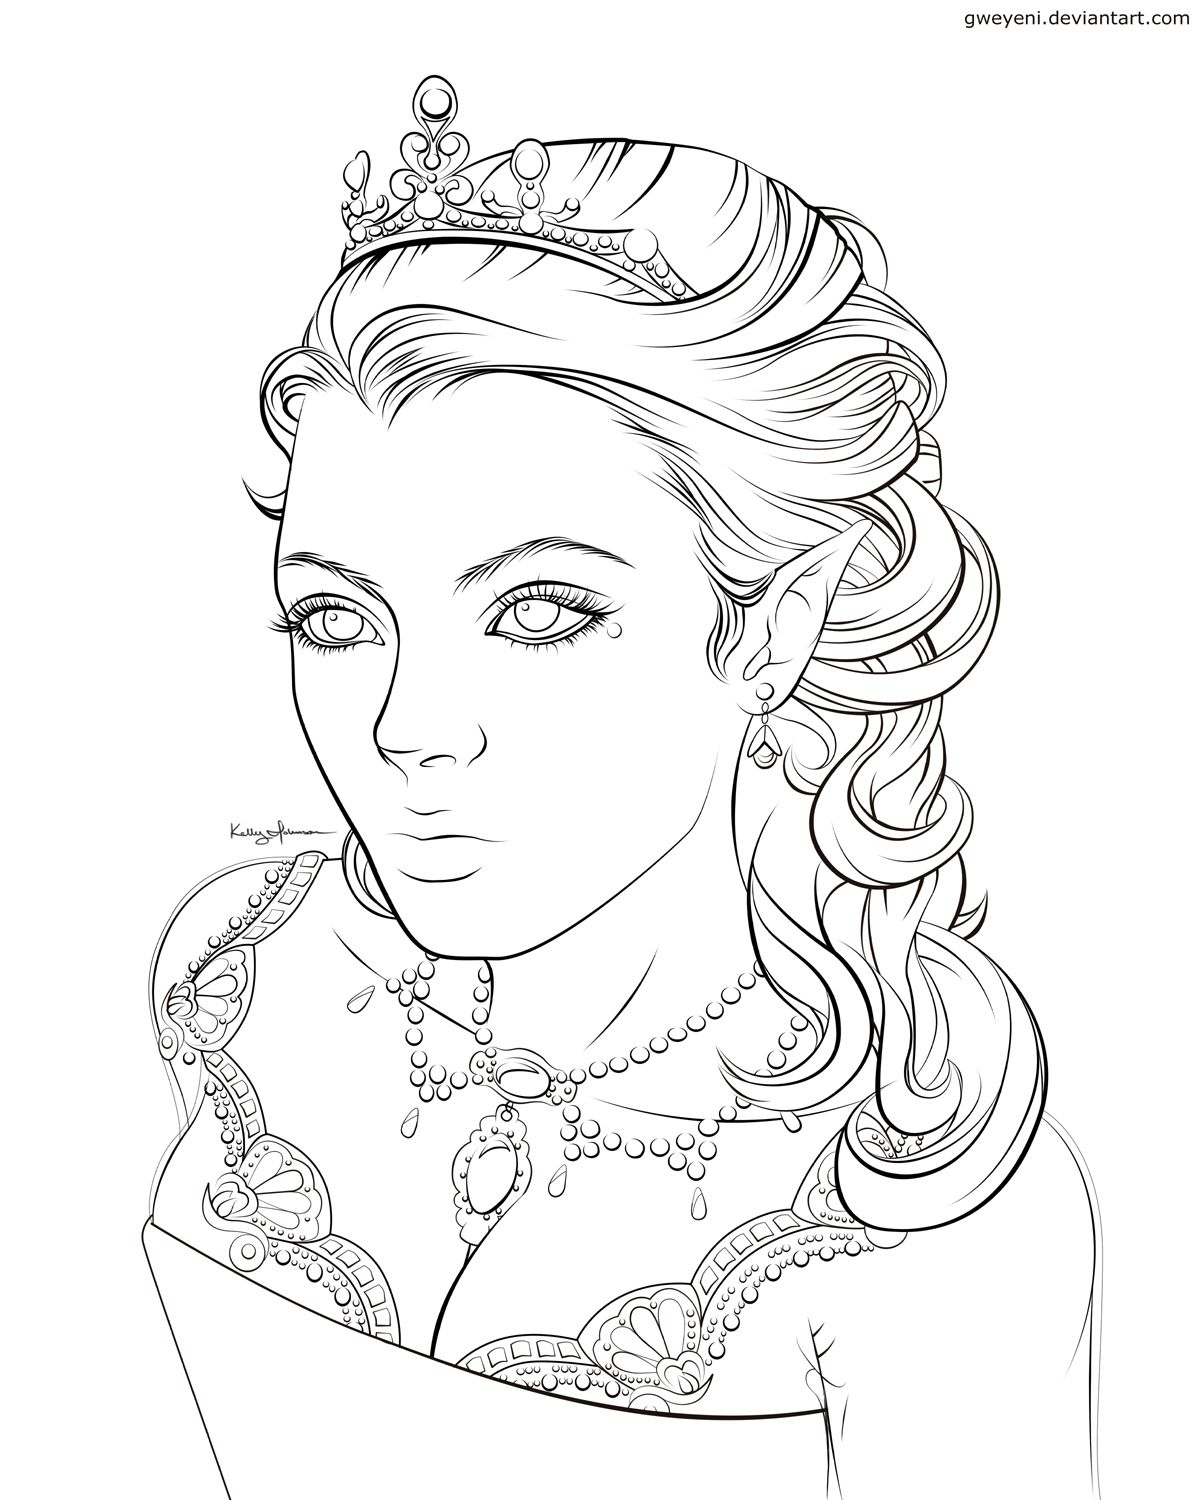 Image Detail For Coloring Page With Stunning Elf Queen Adult